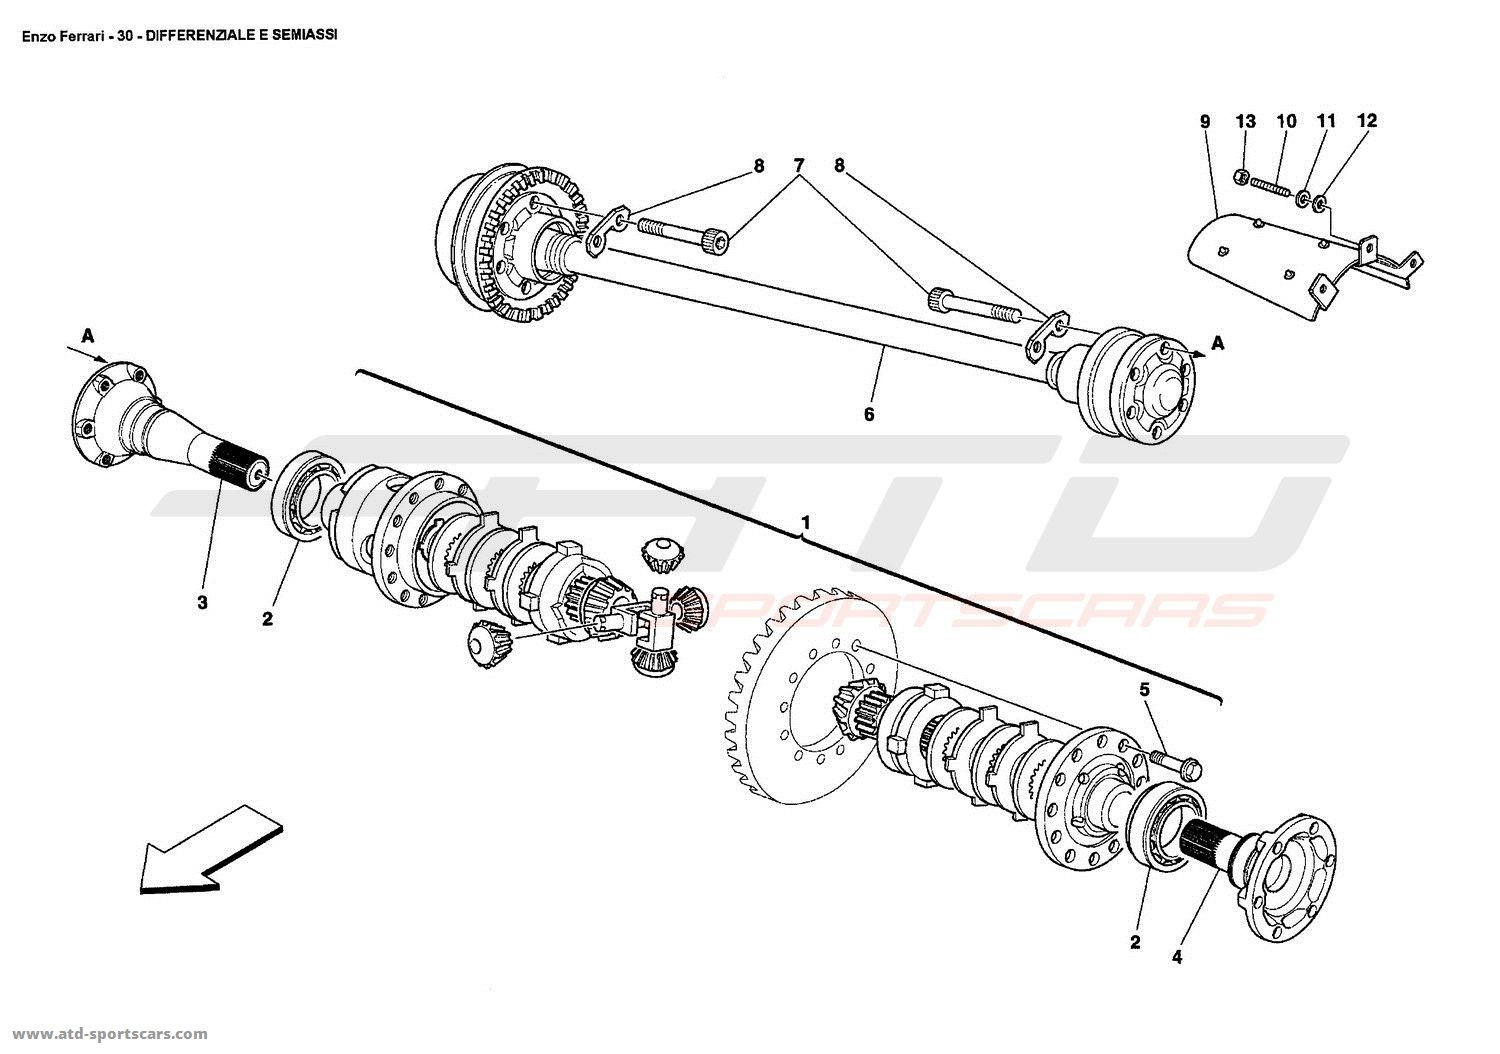 Ferrari Enzo Undercarriage Parts At Atd Sportscars